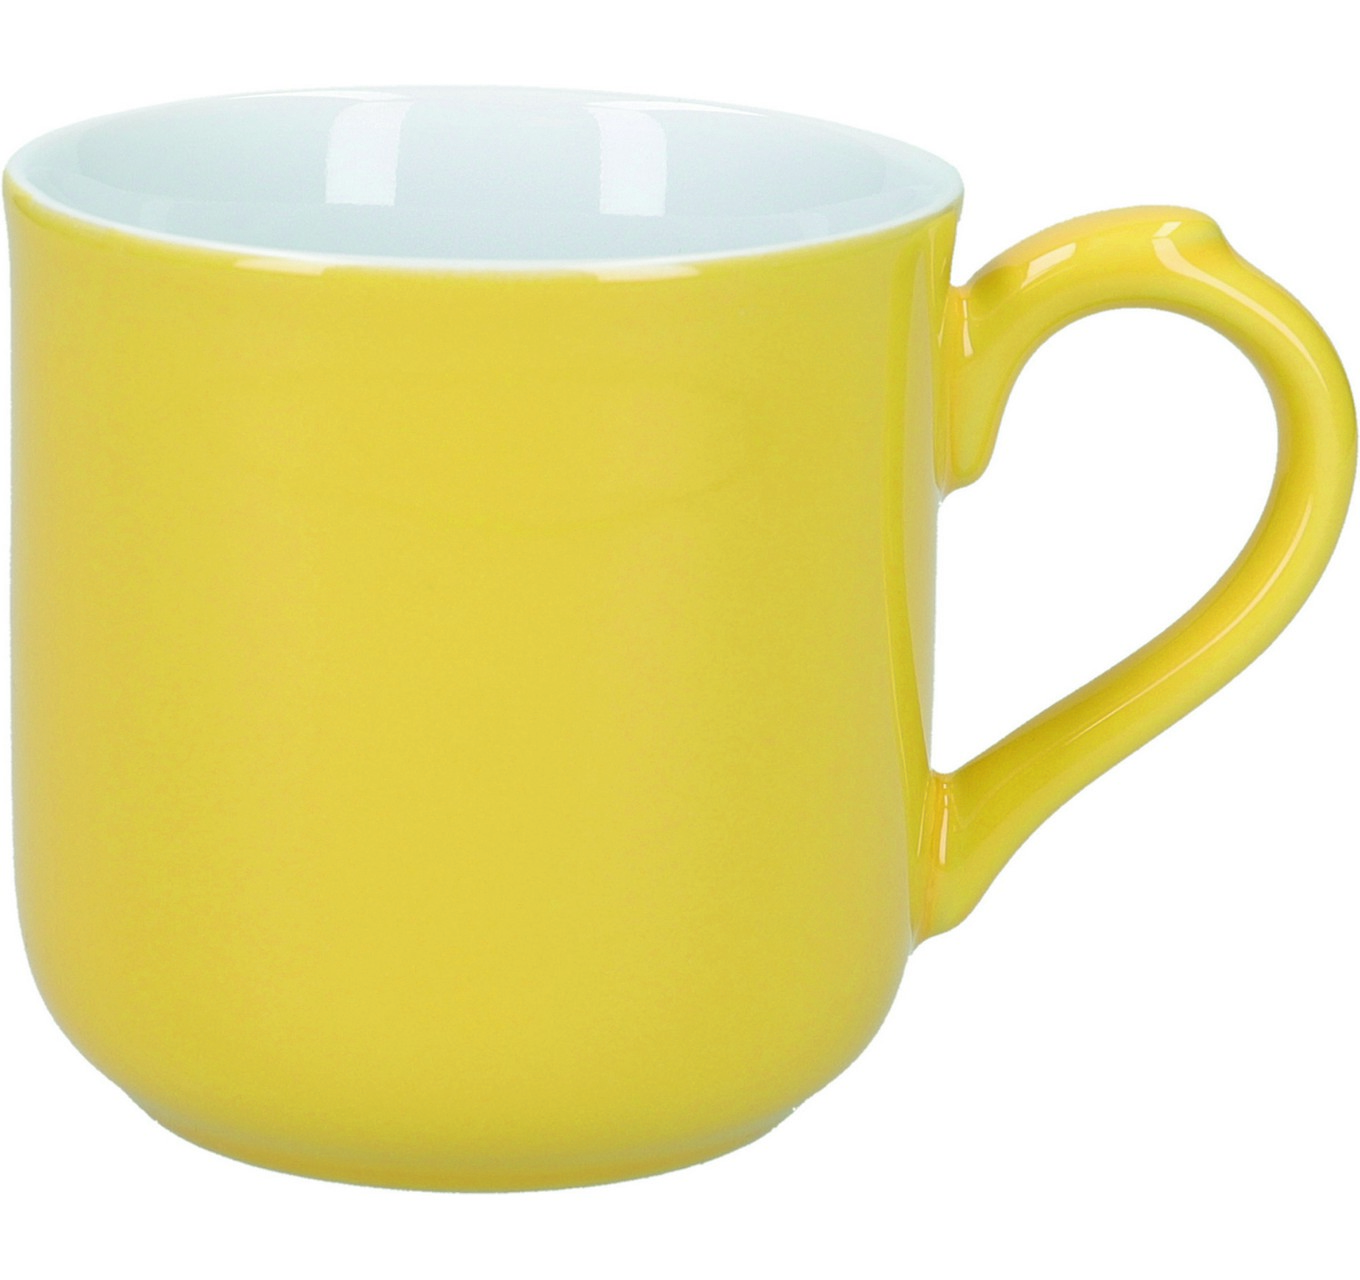 Farmhouse Mug - Yellow 250ml